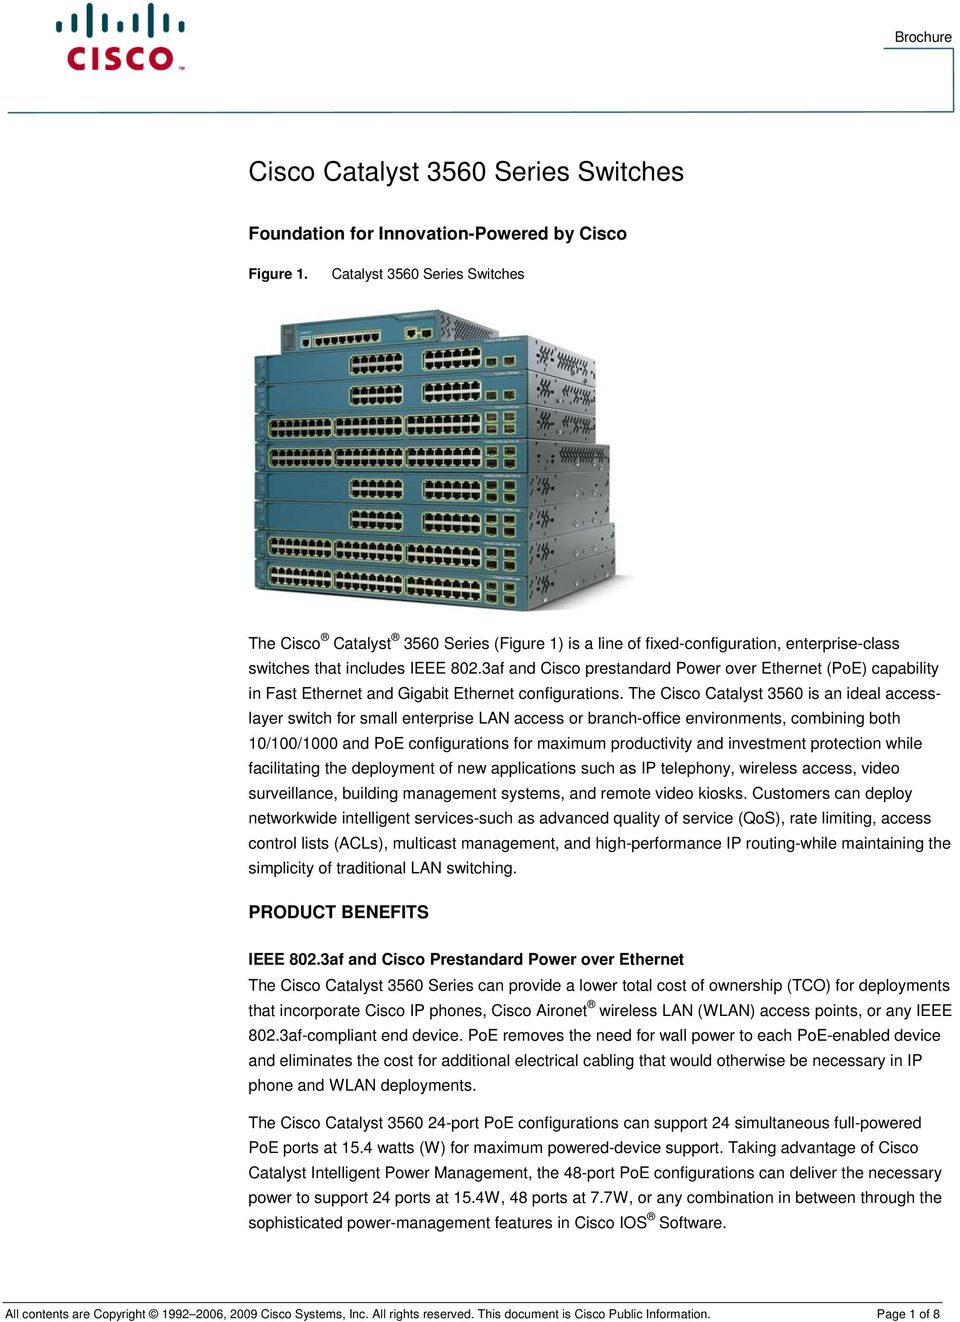 Catalyst 3560 Series Switches - PDF